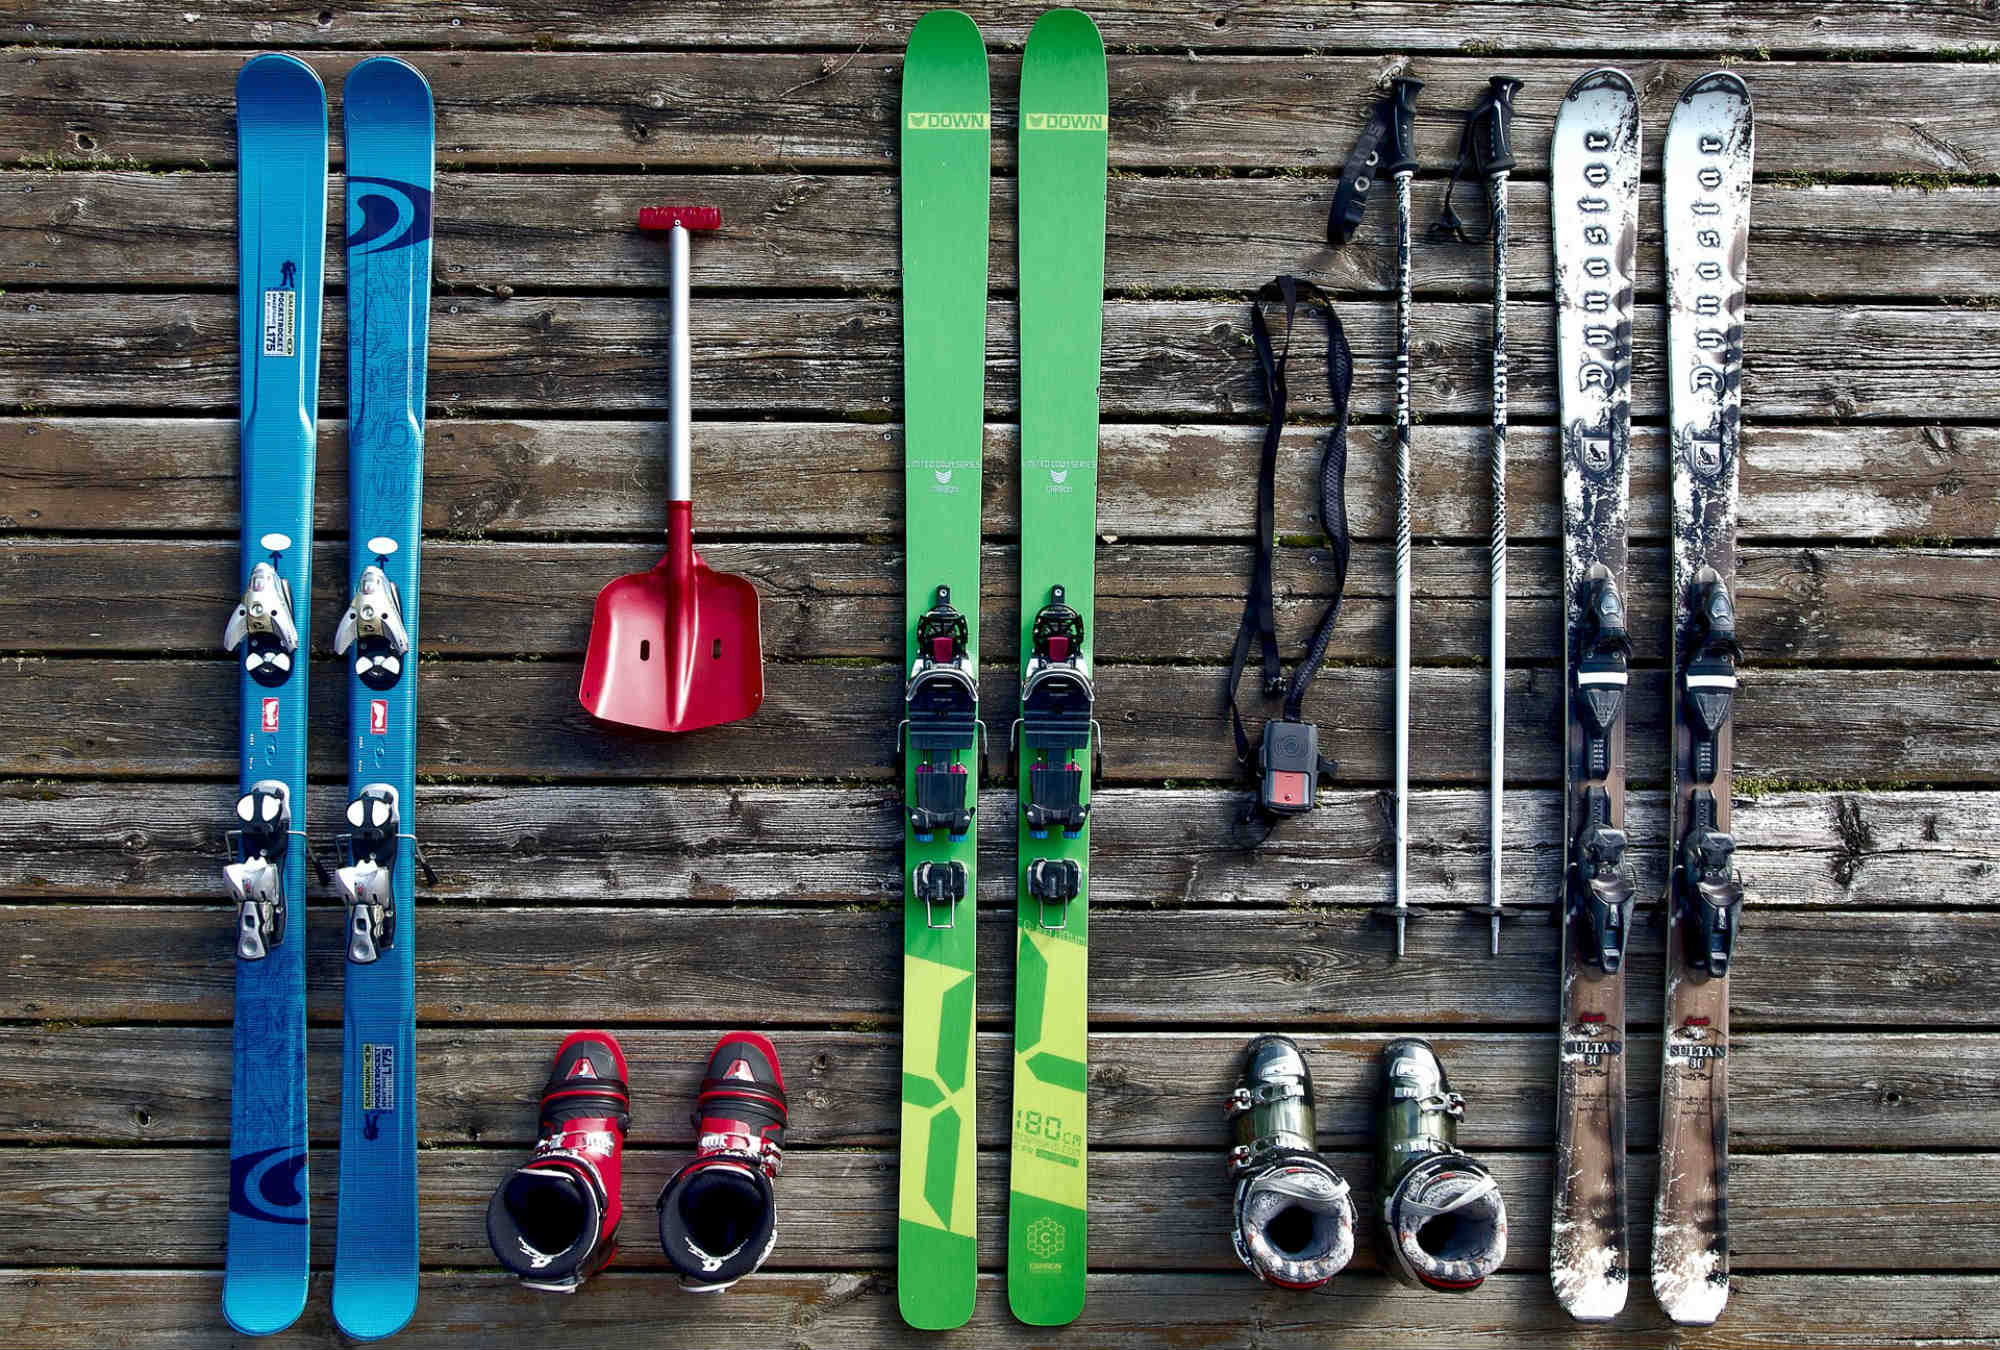 Basic freeriding equipment including a shovel and an avalanche transceiver.